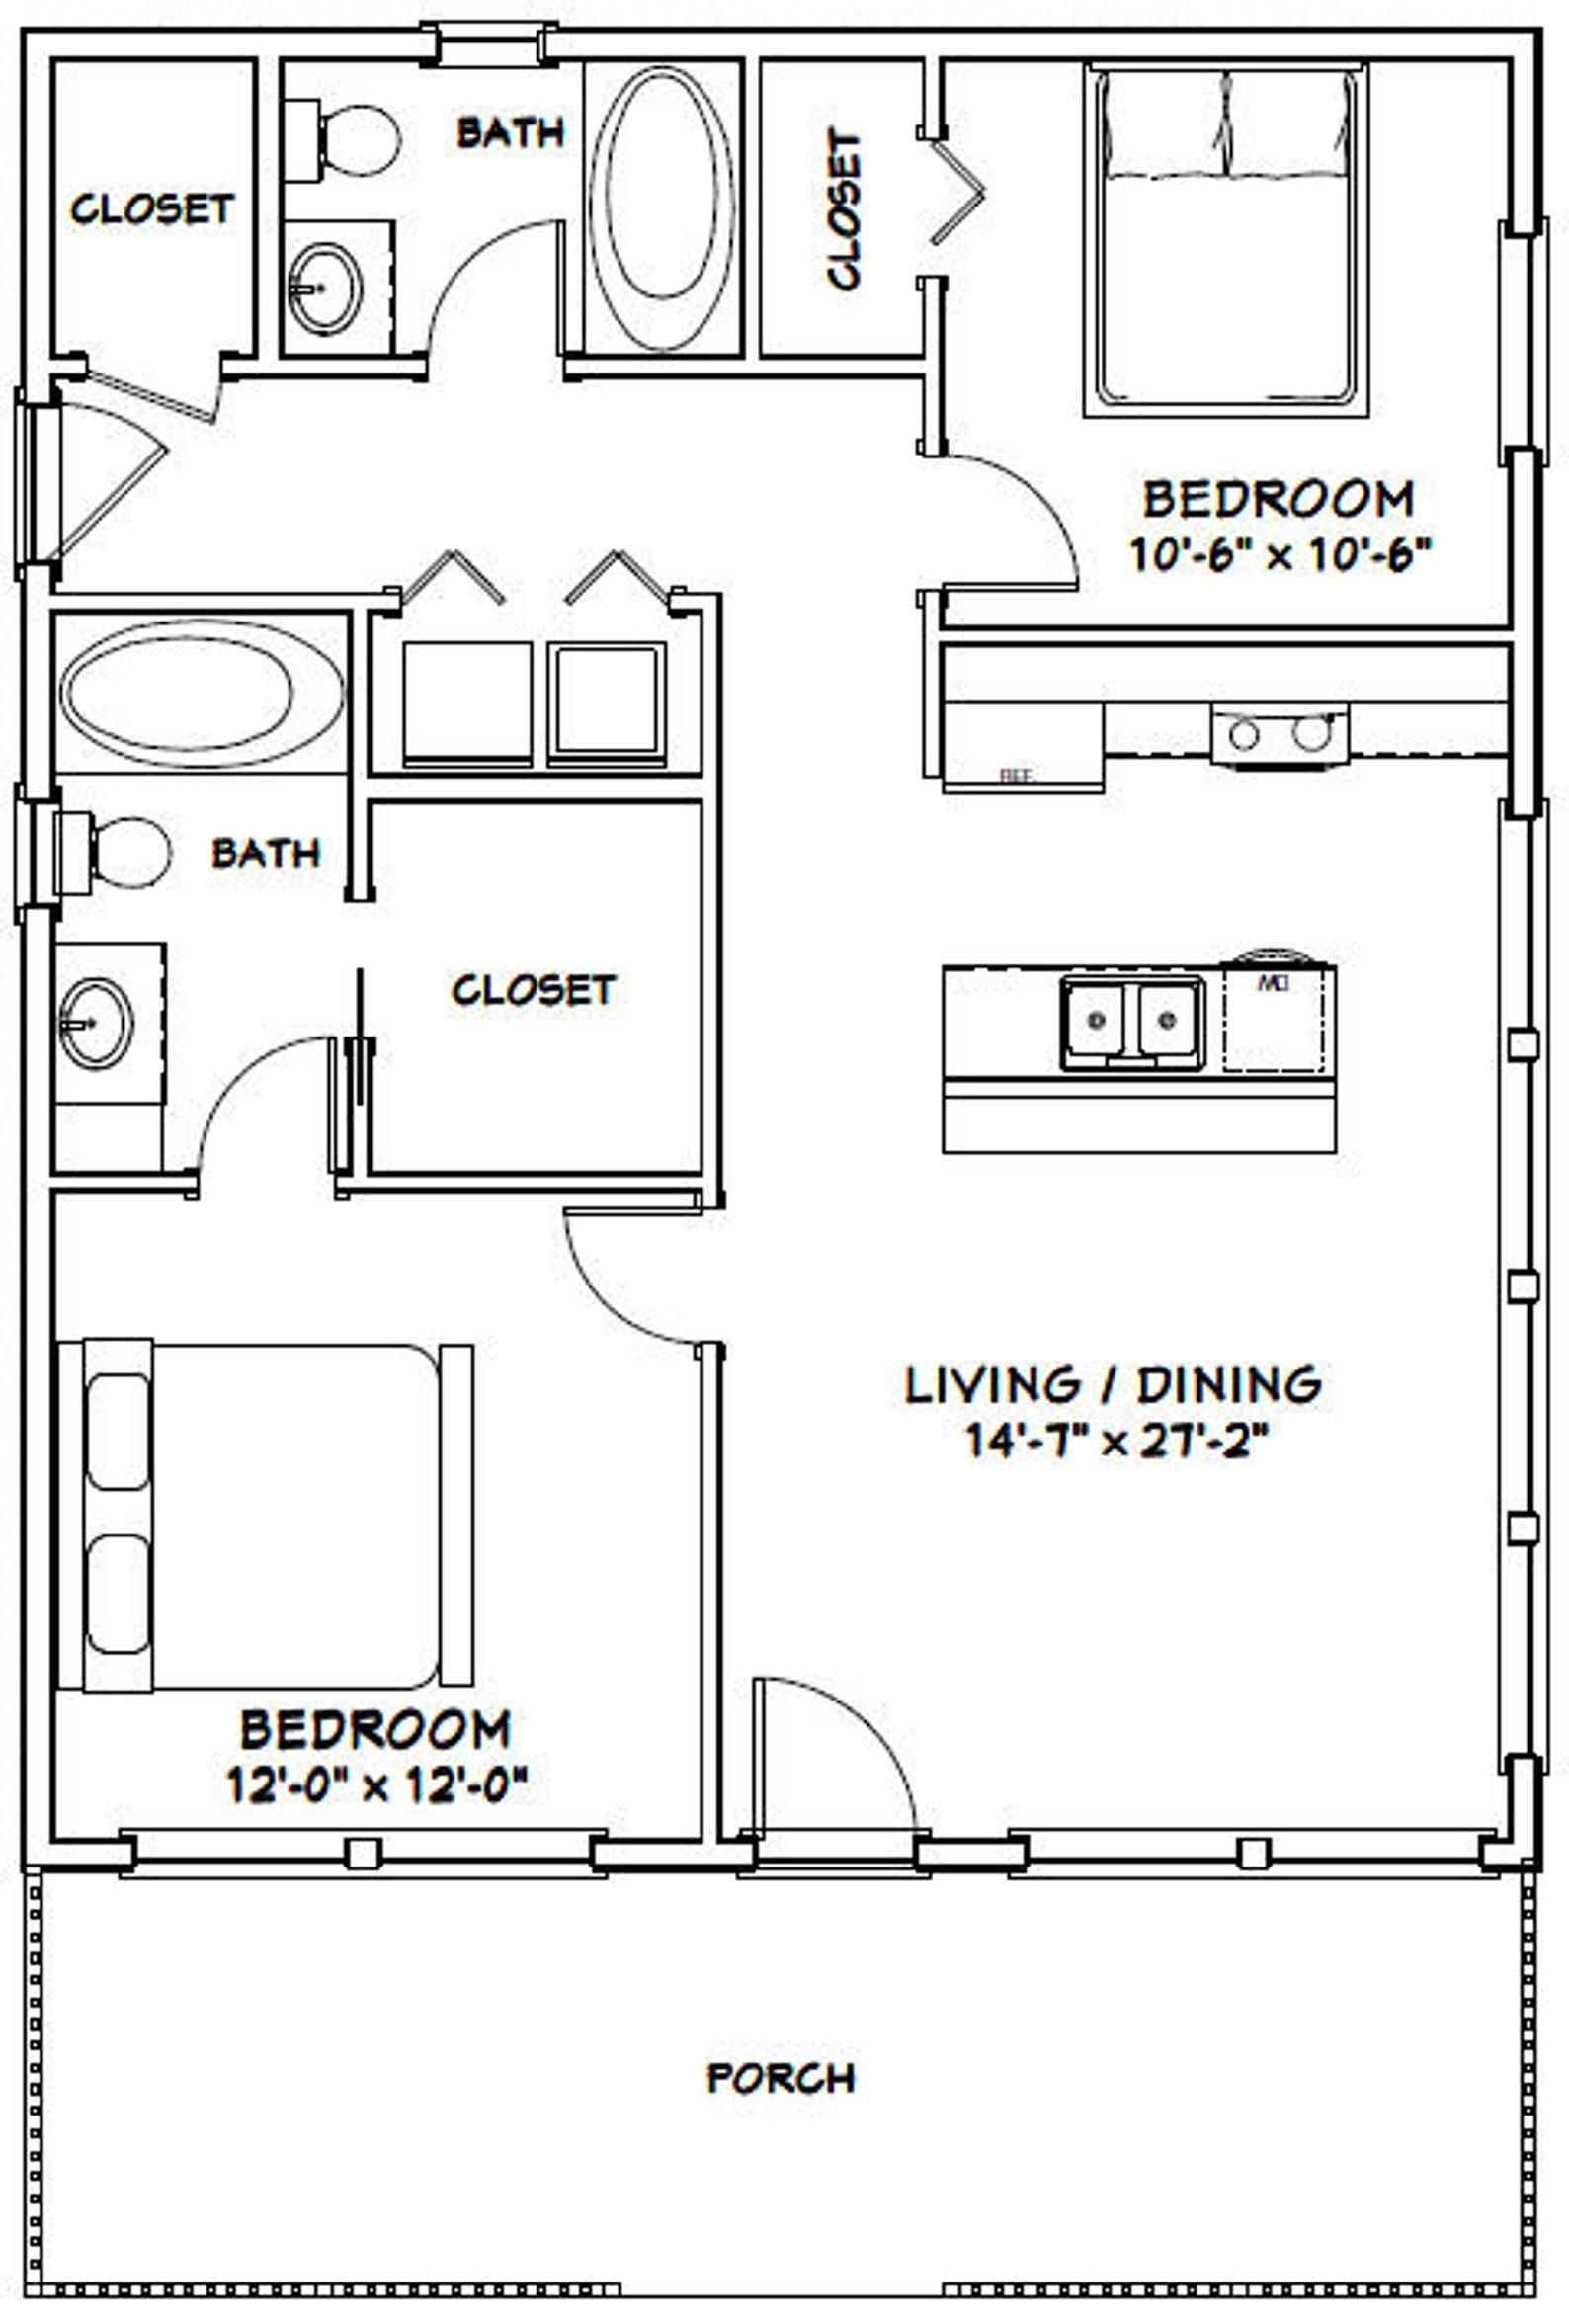 28x34 House 2 Bedroom 2 Bath 952 Sq Ft Pdf Floor Plan Etsy In 2021 Tiny House Floor Plans Small House Floor Plans Small House Plans